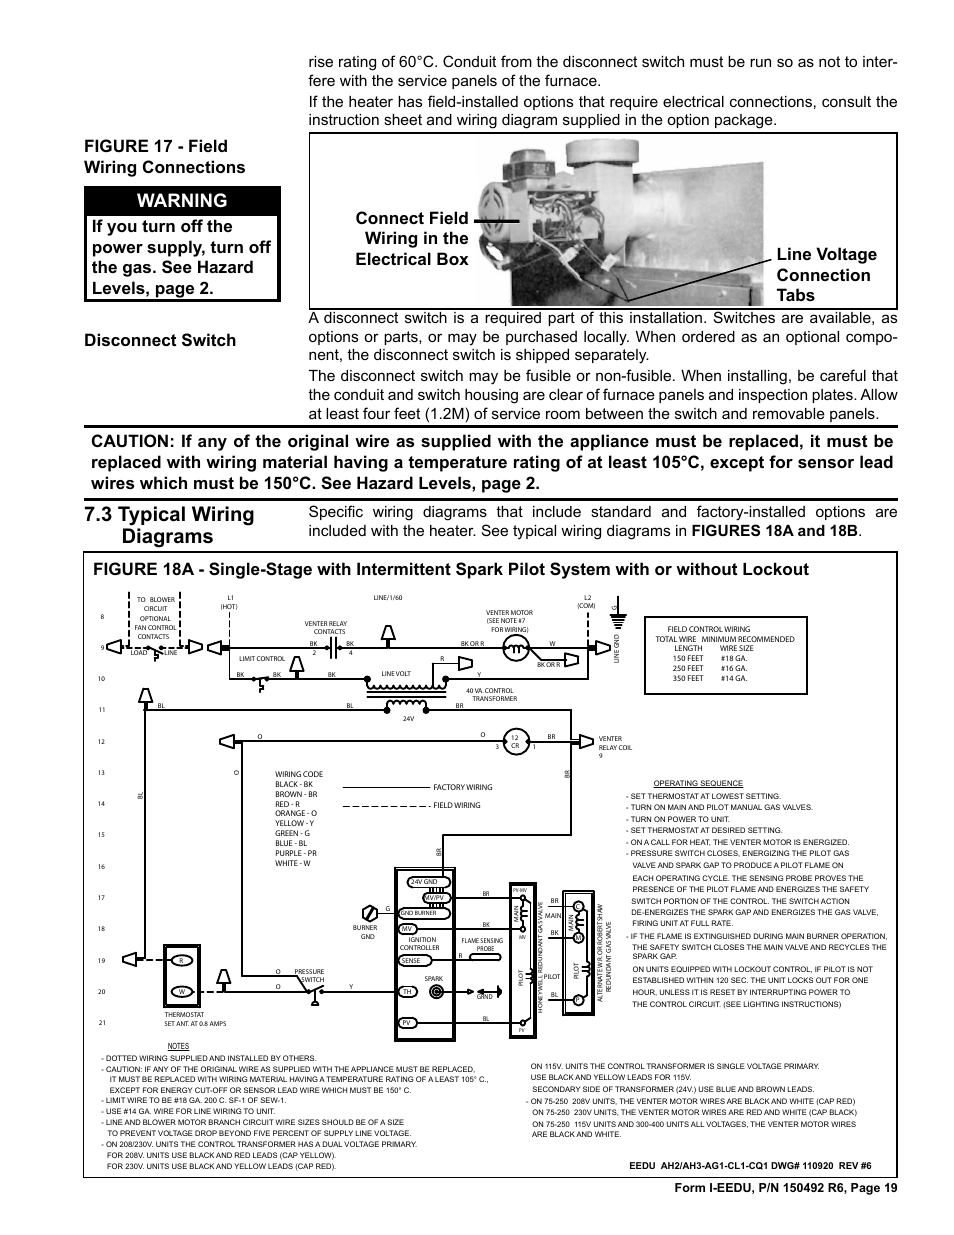 hight resolution of 3 typical wiring diagrams warning reznor eedu unit installation manual user manual page 19 32